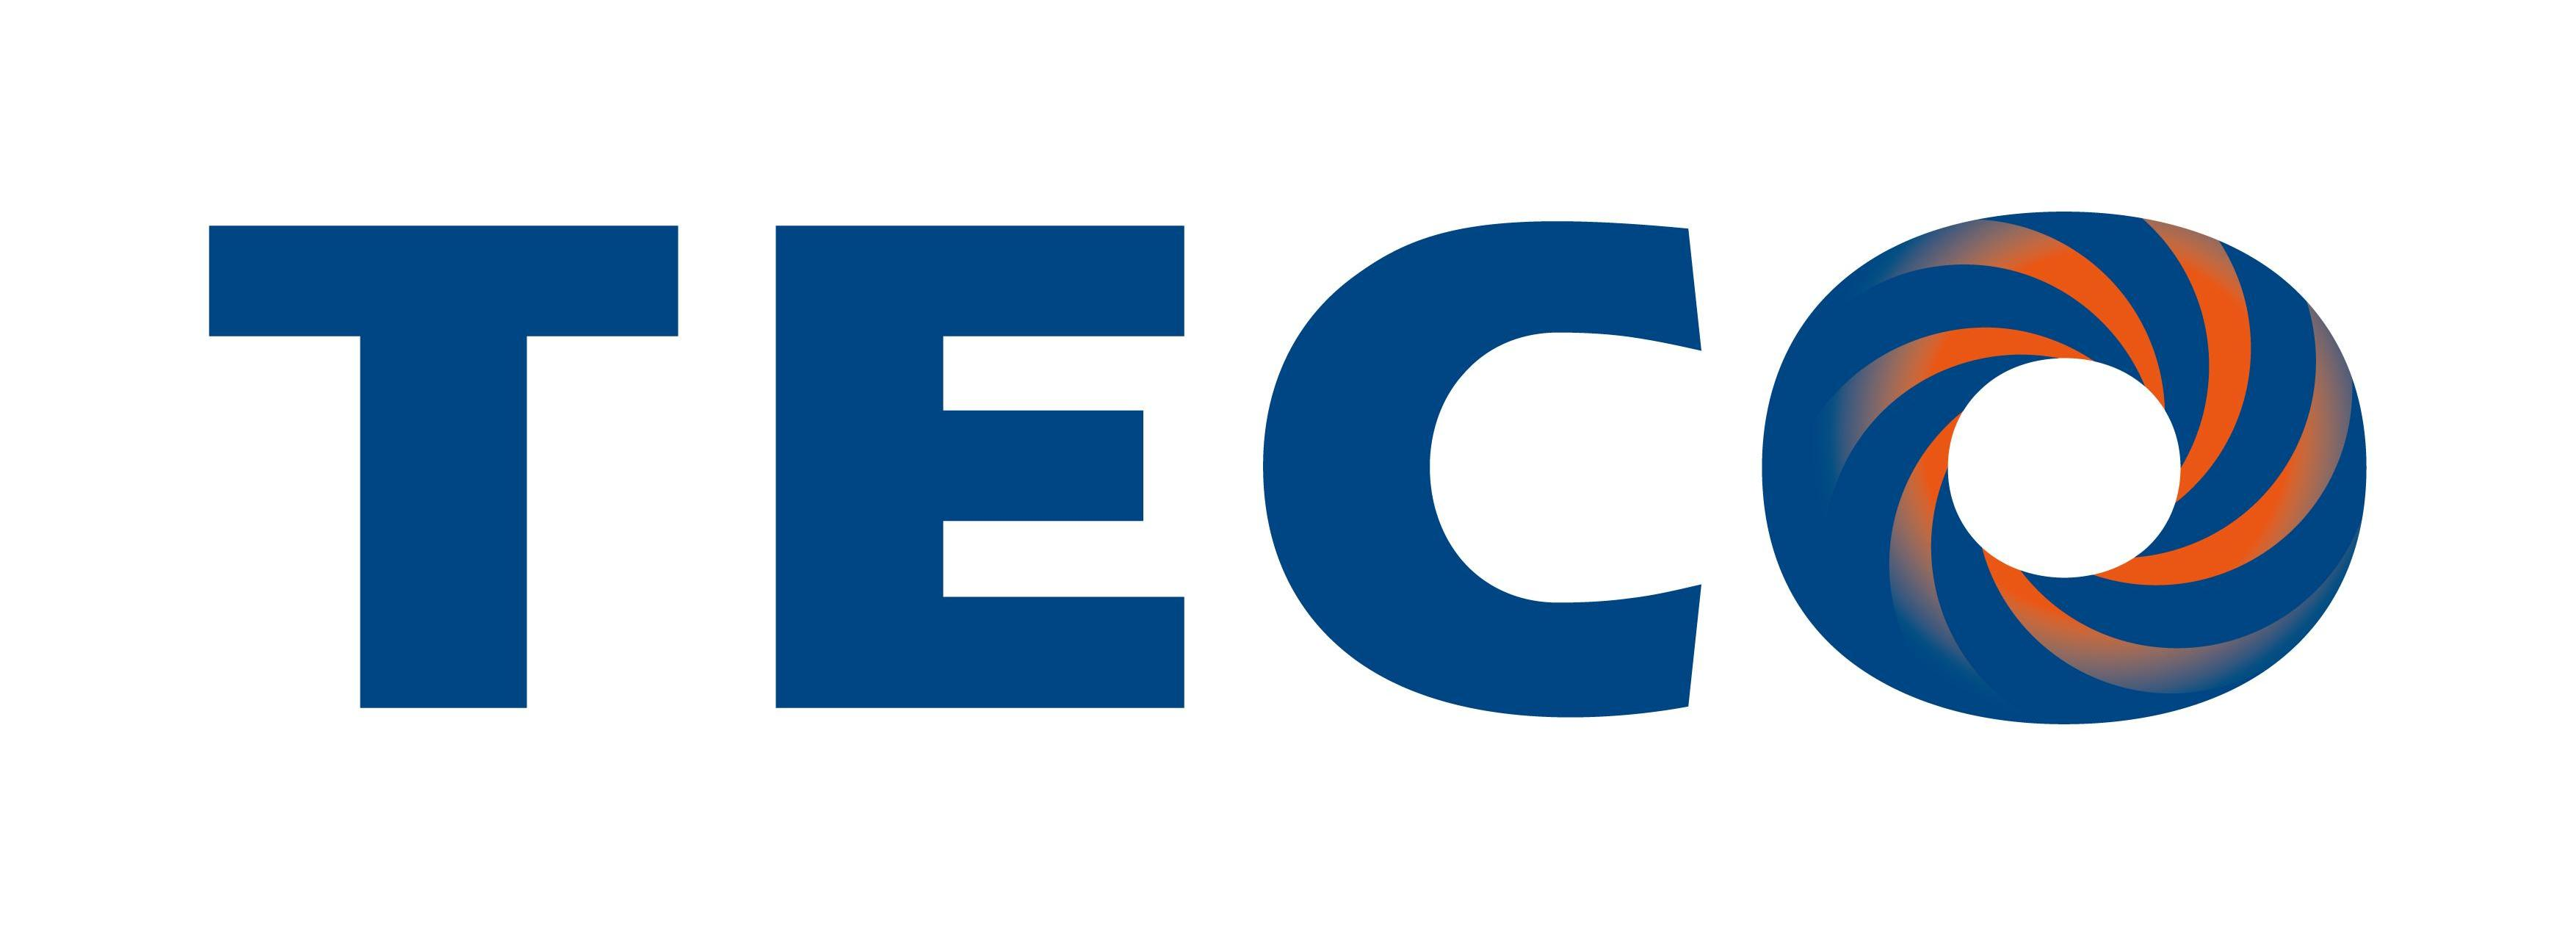 TECO ELECTRIC & MACHINERY CO., LTD.-Logo